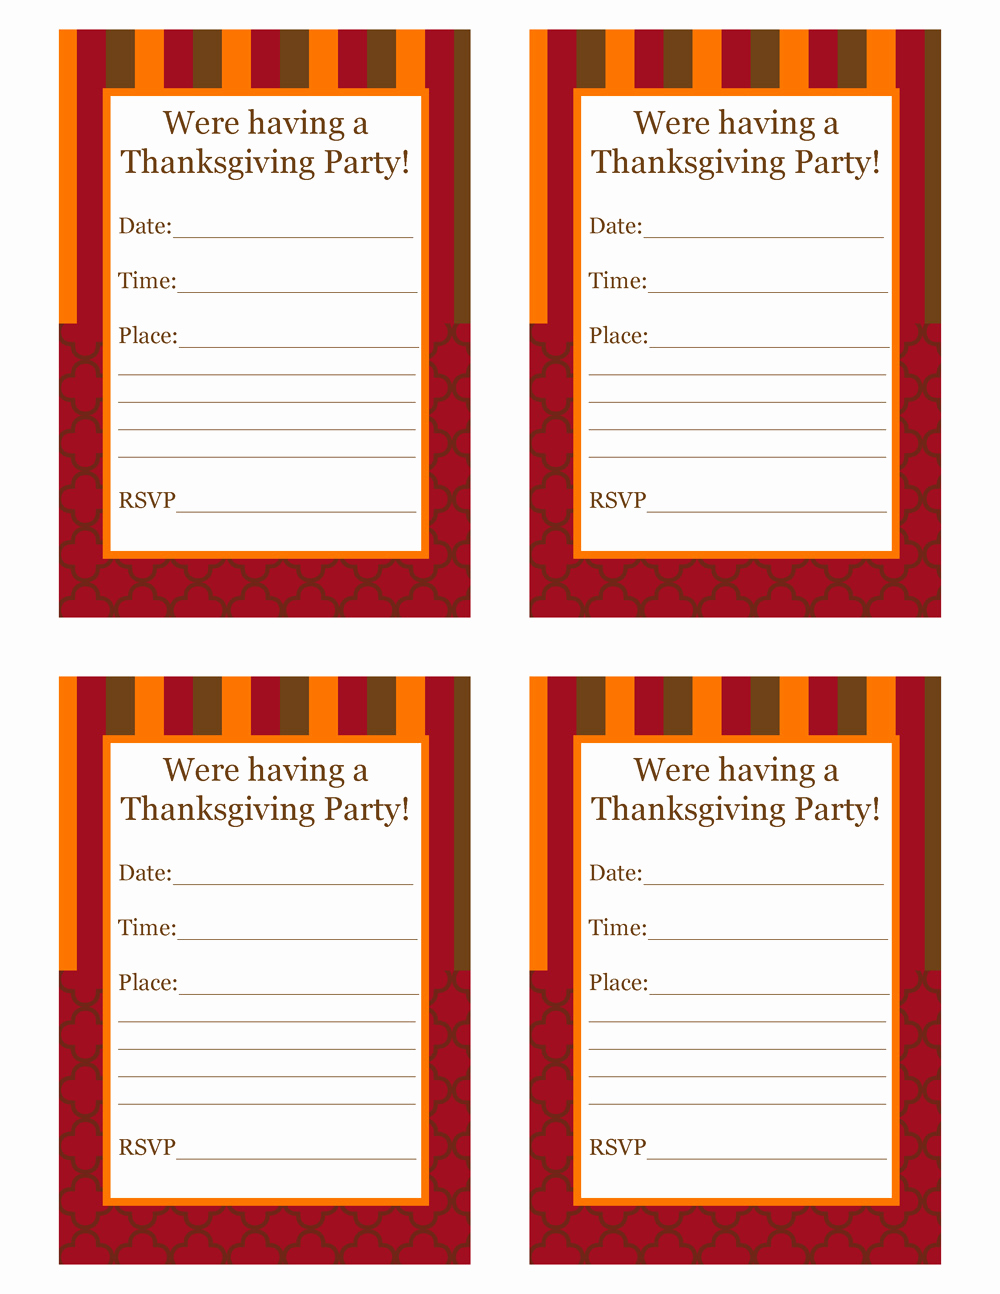 Free Thanksgiving Invitation Templates Inspirational Free Thanksgiving Party Printables From Cupcake Express